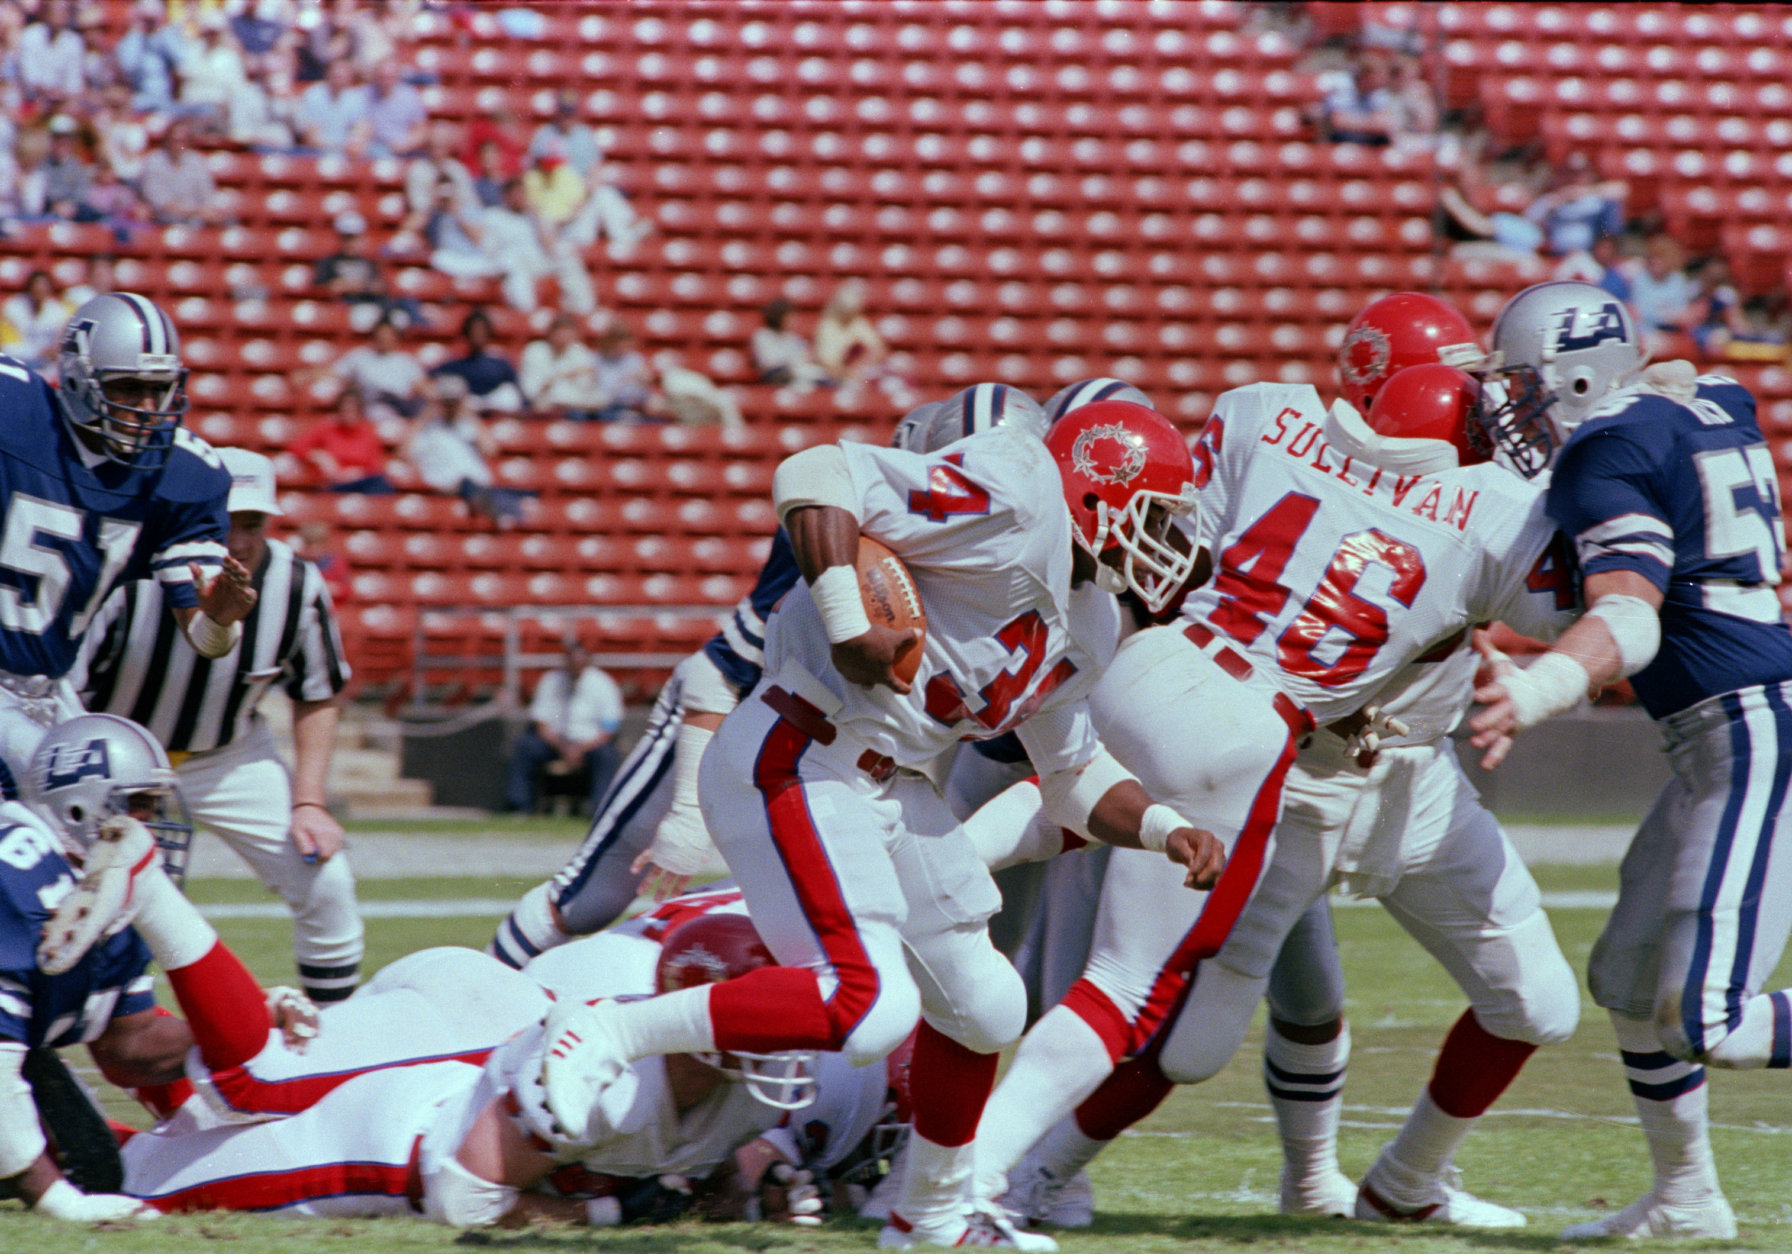 New Jersey Generals' Herschel Walker runs a nine-yard gain for a first down during the USFL game against the Los Angeles Express, in Los Angeles, March 6, 1982. Los Angeles defeated the Generals, 20-15. (AP Photo/Reed Saxon)